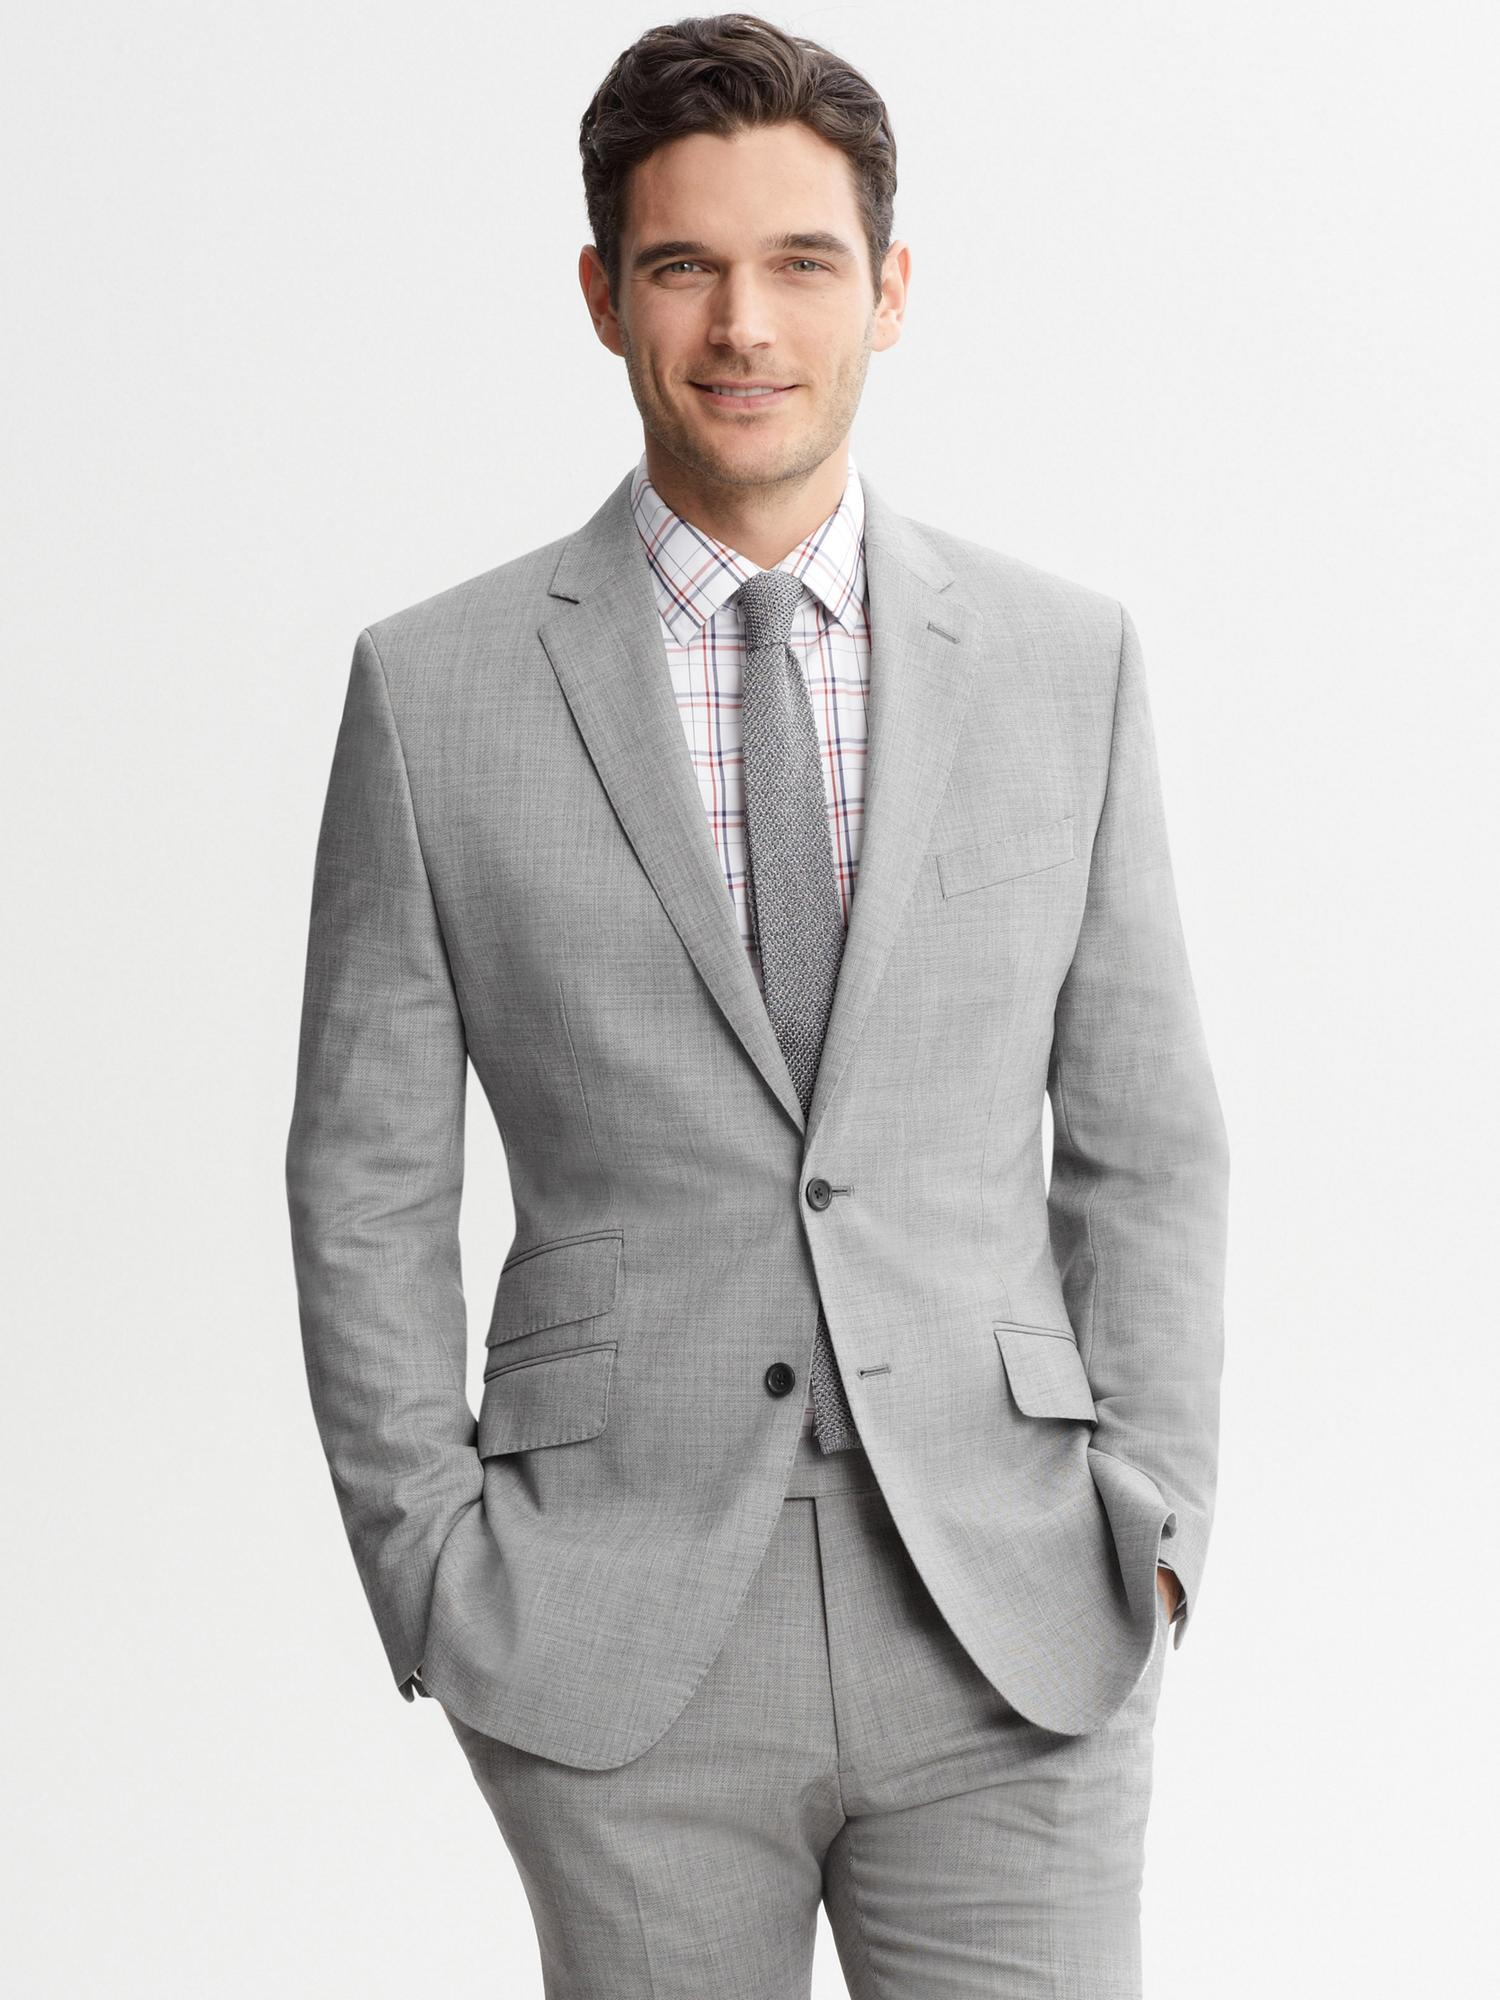 Highlights for Banana Republic. Great style doesn't just happen overnight, but, thanks to Banana Republic, you don't have to work too hard to maintain a modern, functional and fashionable wardrobe.